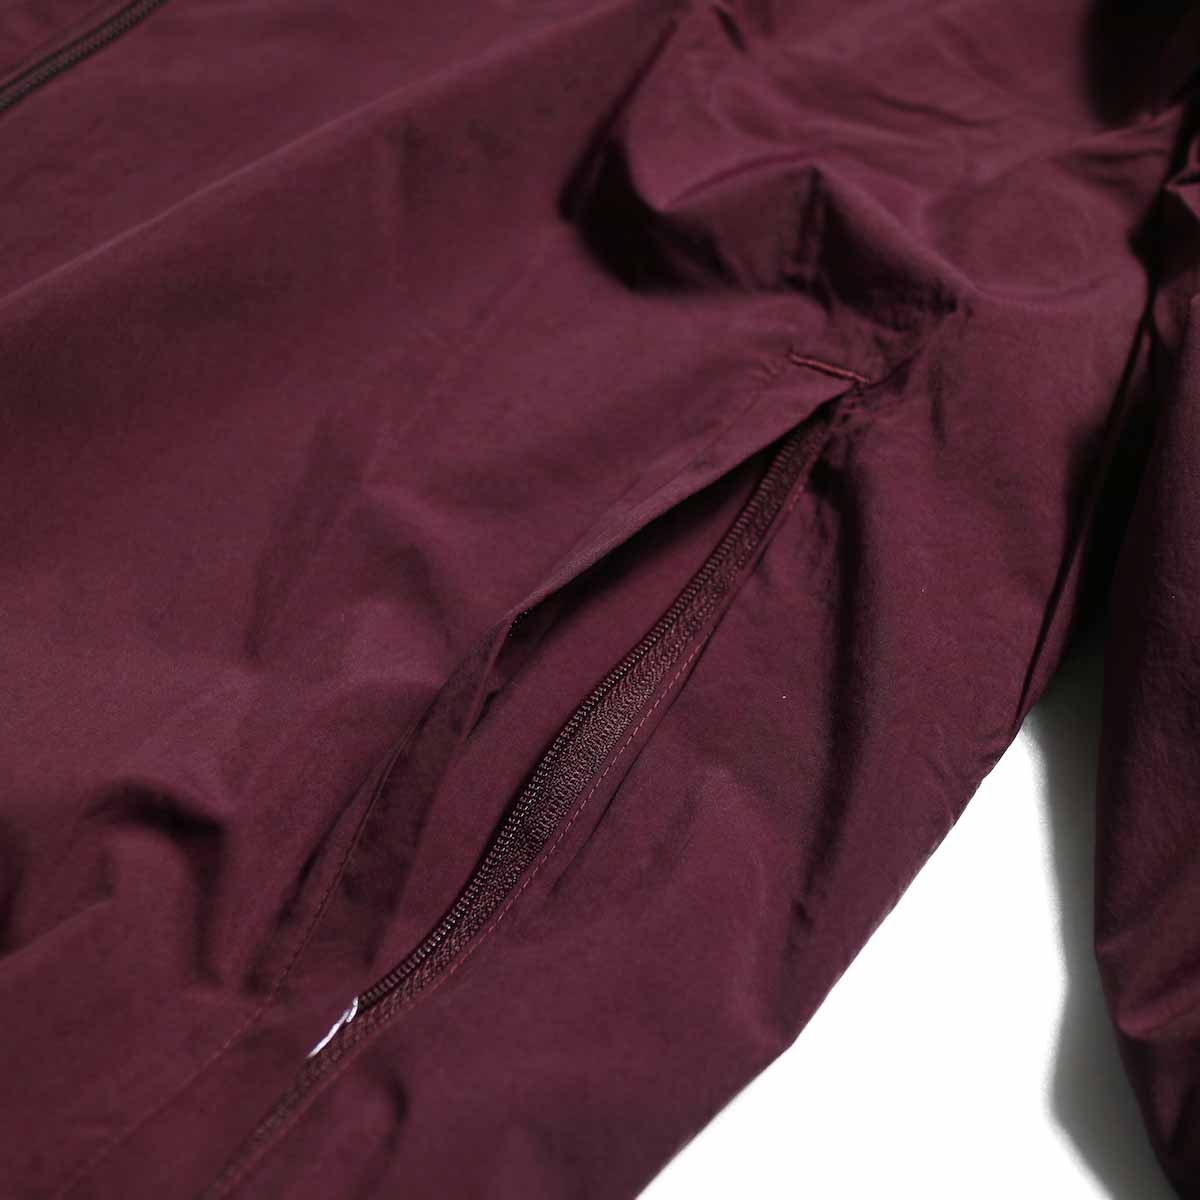 adidas originals / Flamestrike Woven Track Top -Maroon ポケット